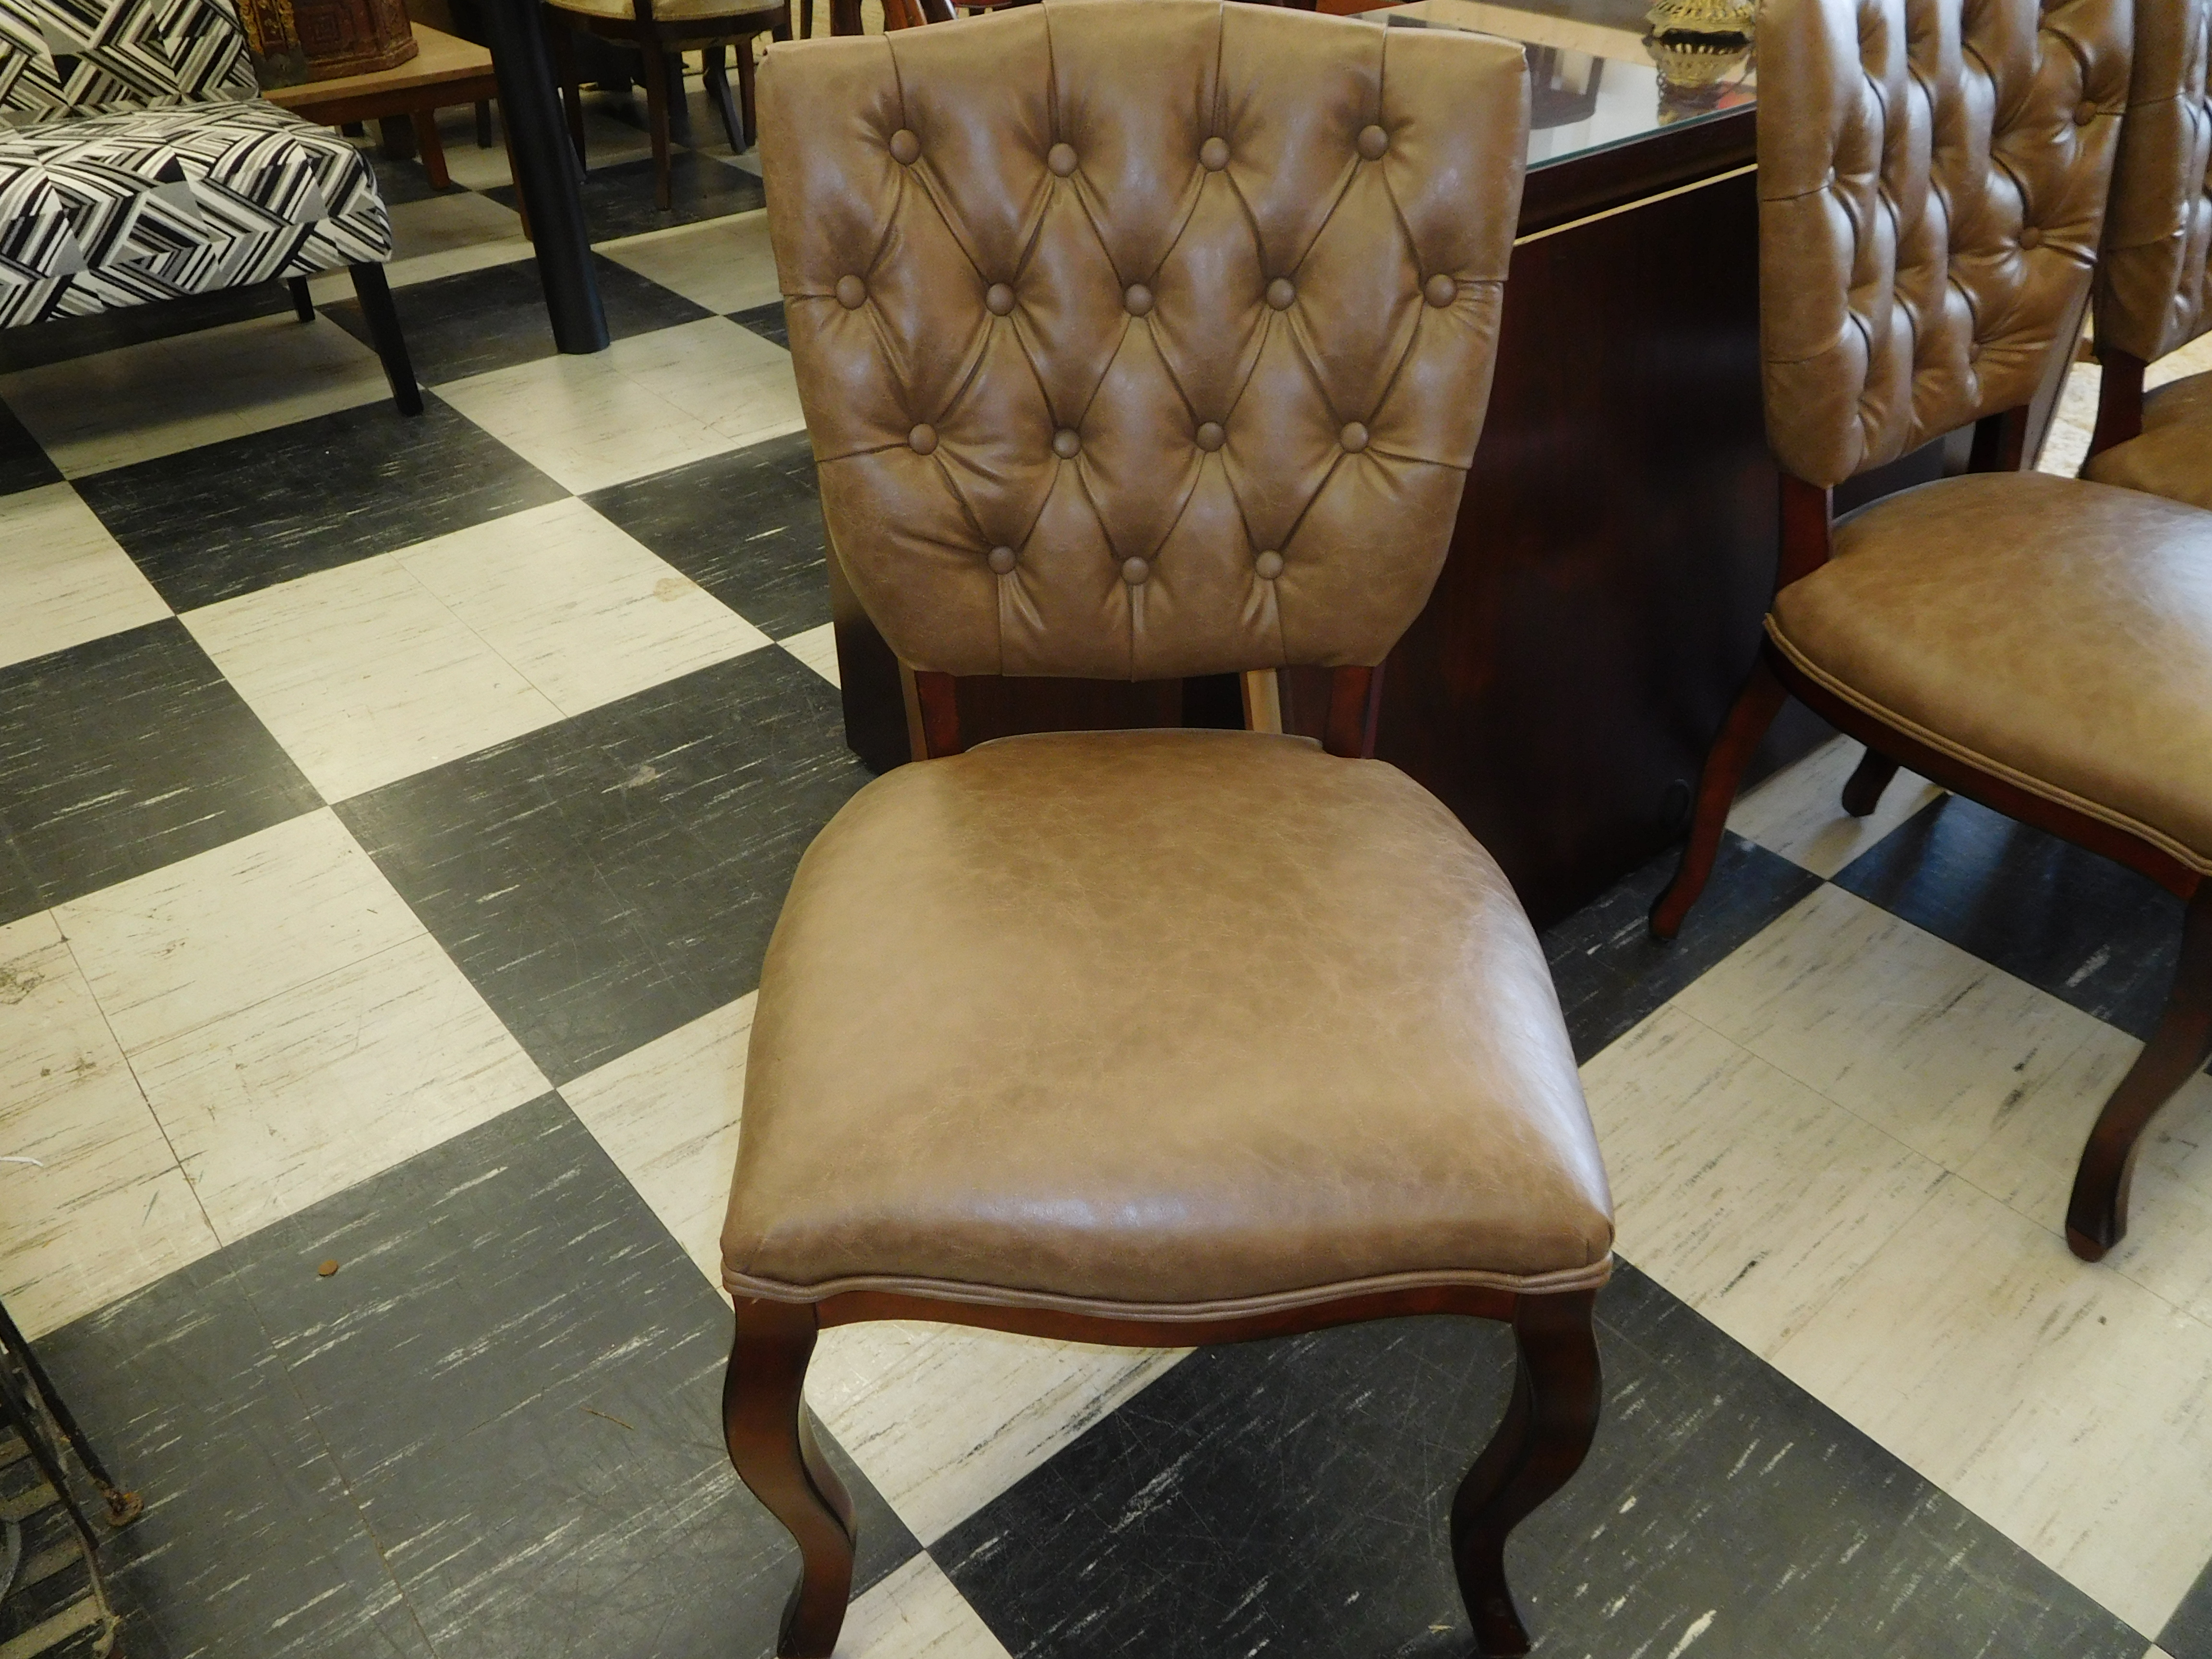 Victorian Style Tufted Dining Chair by Pier 1, Brown